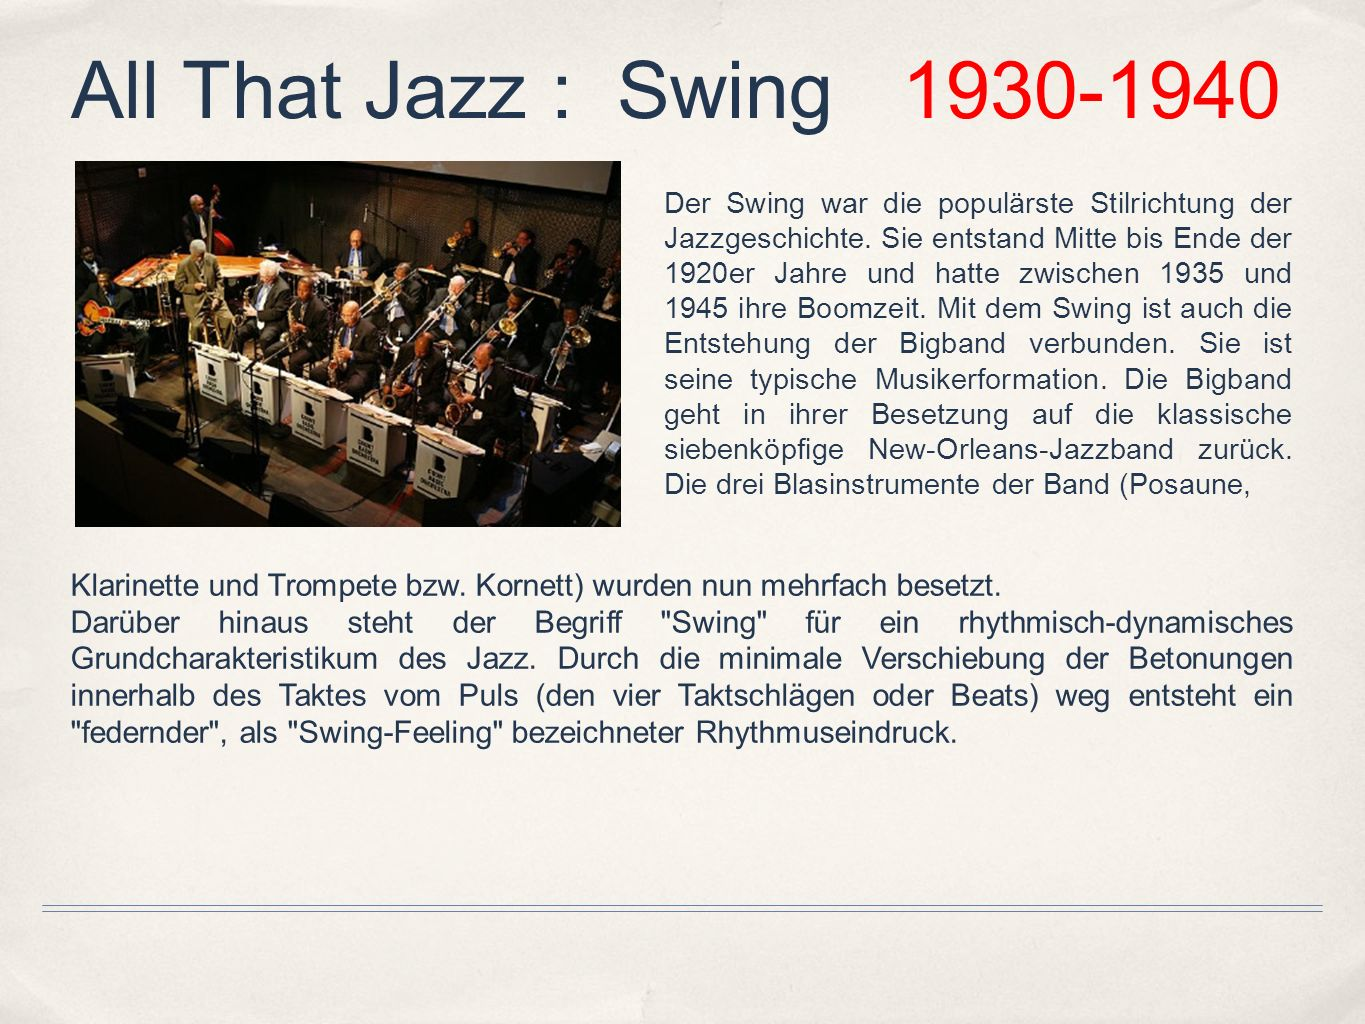 All That Jazz : Swing 1930-1940